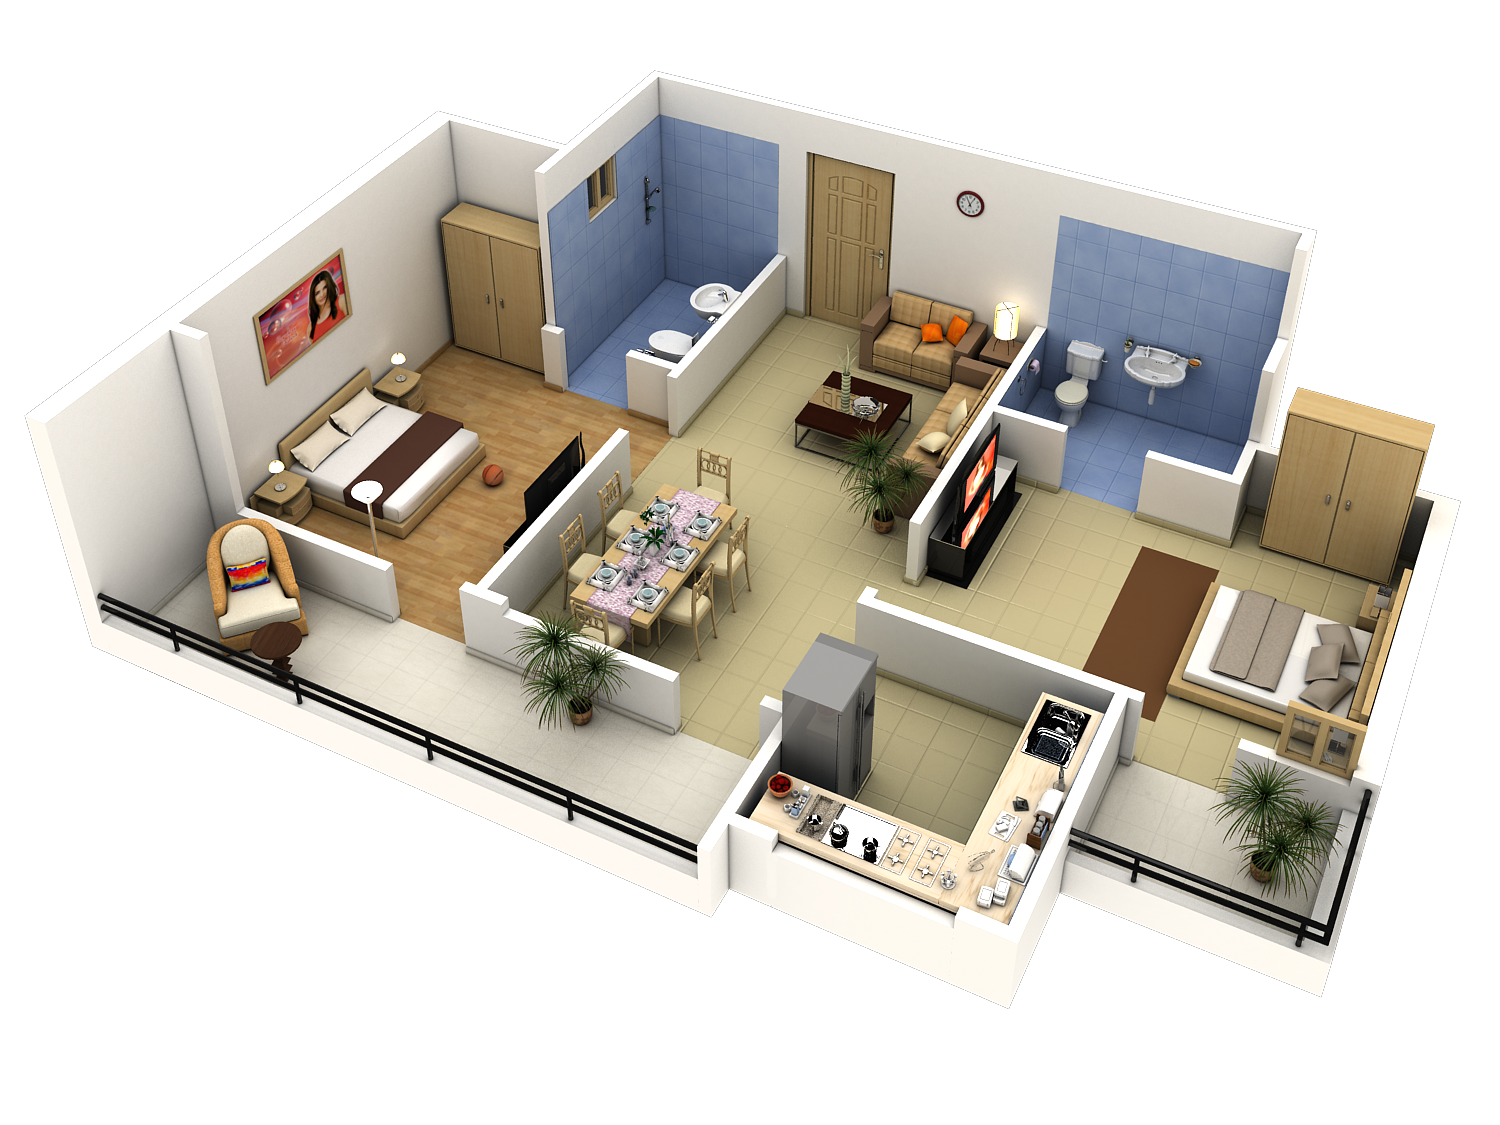 Easy 3d Floor Plan 3d Floor Plans Are Also A Great Way For Architects Realtors And Home Bedroom House Plans Craftsman Bungalow House Plans Floor Plan Design